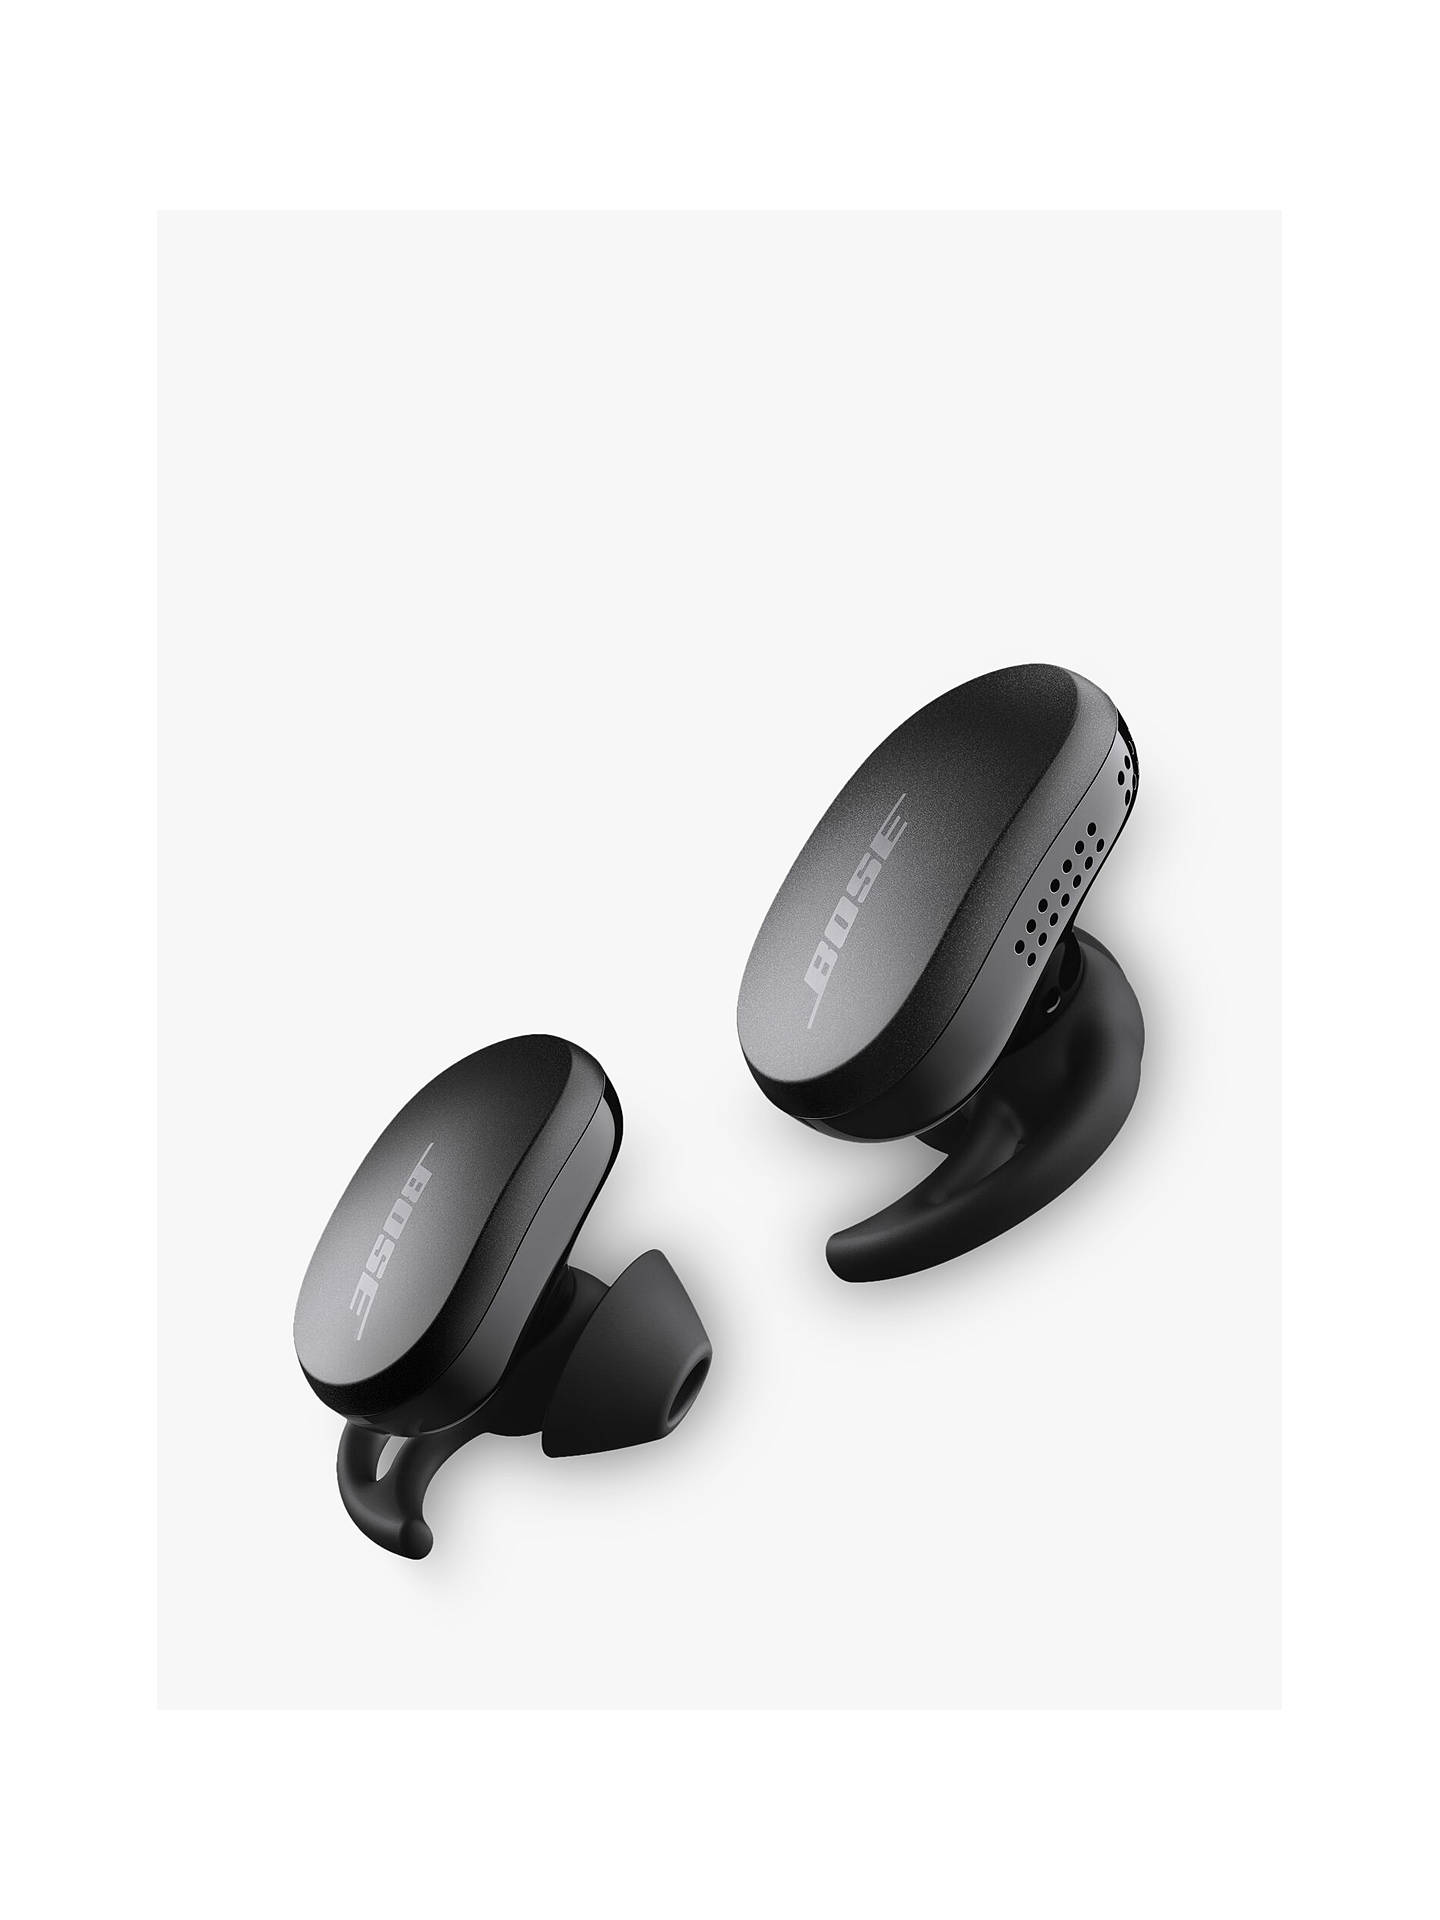 Buy Bose® QuietComfort® Earbuds Noise Cancelling True Wireless Sweat & Weather-Resistant Bluetooth In-Ear Headphones with Mic/Remote, Triple Black Online at johnlewis.com